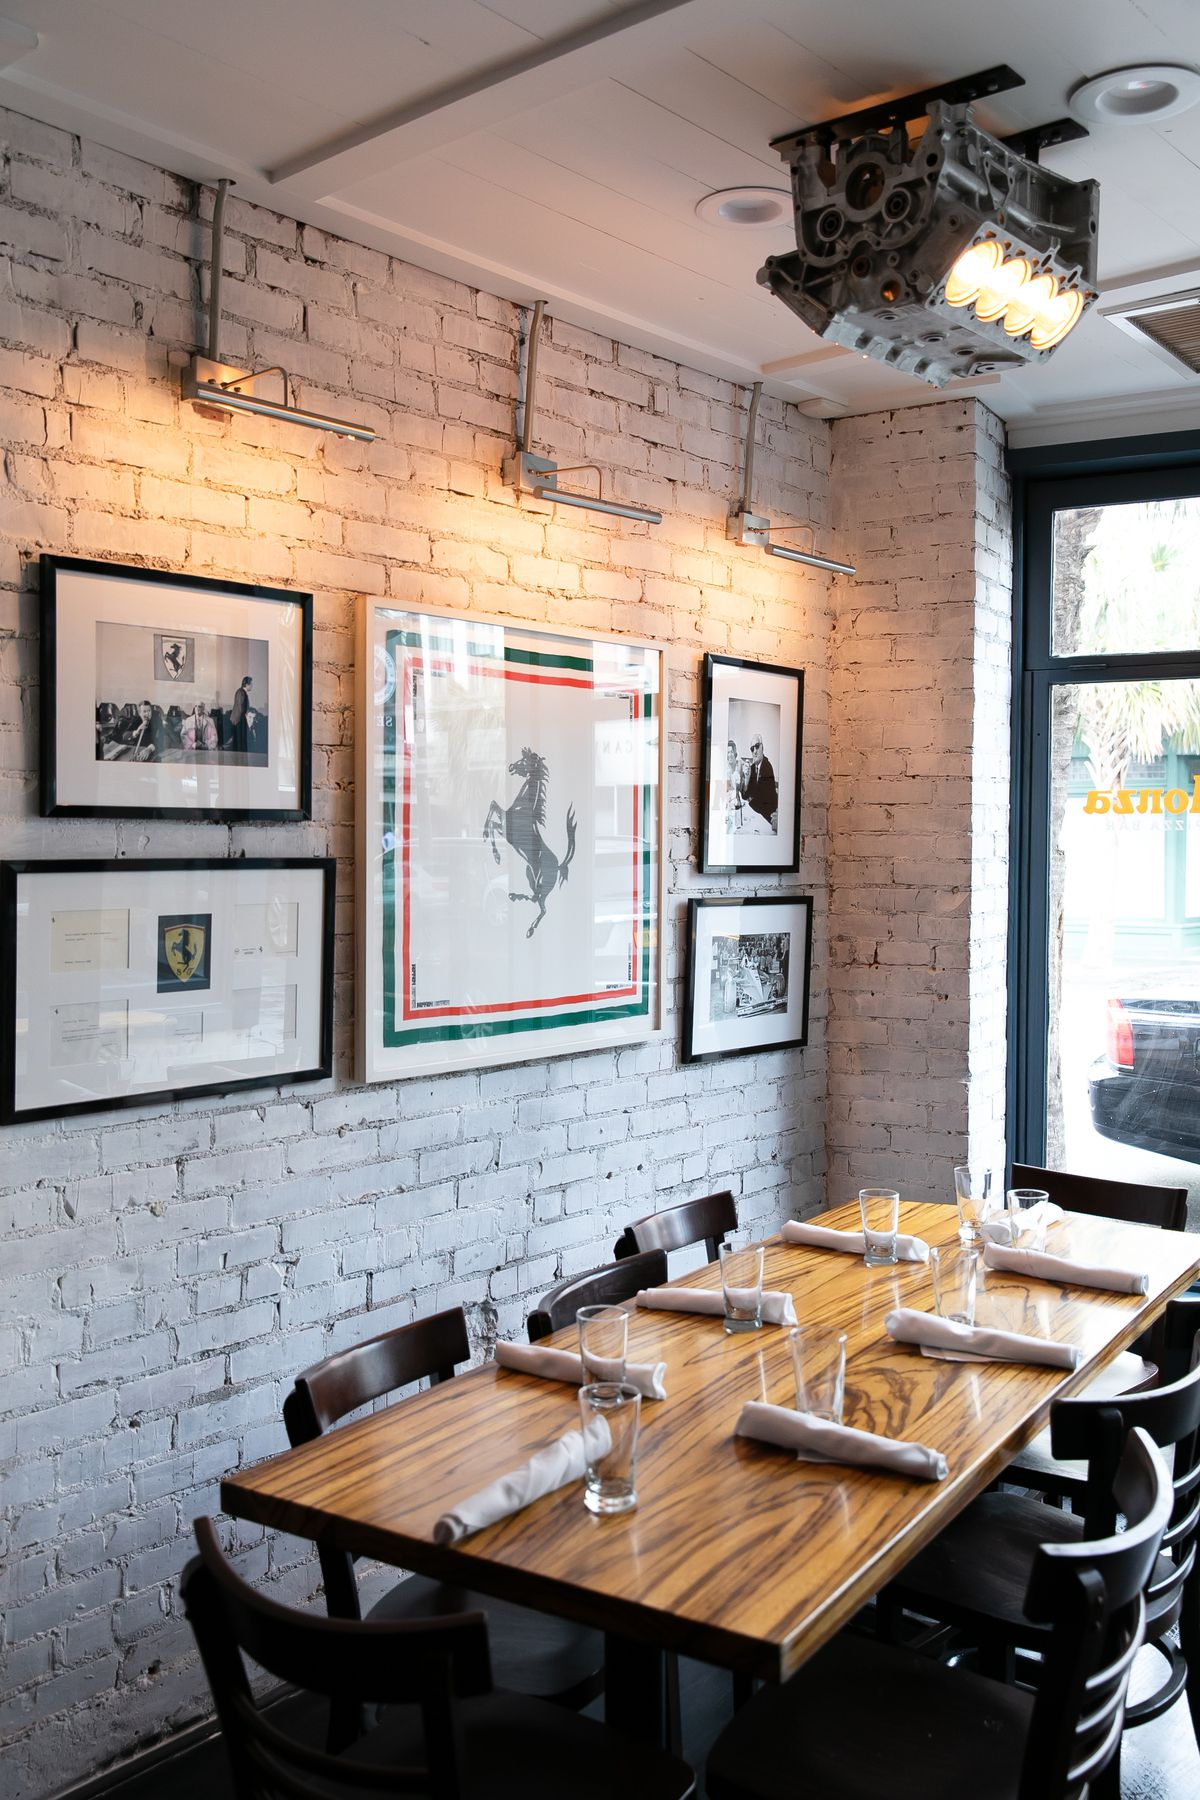 Monza Pizza Bar Shows Off Polished Updated Interiors on ...